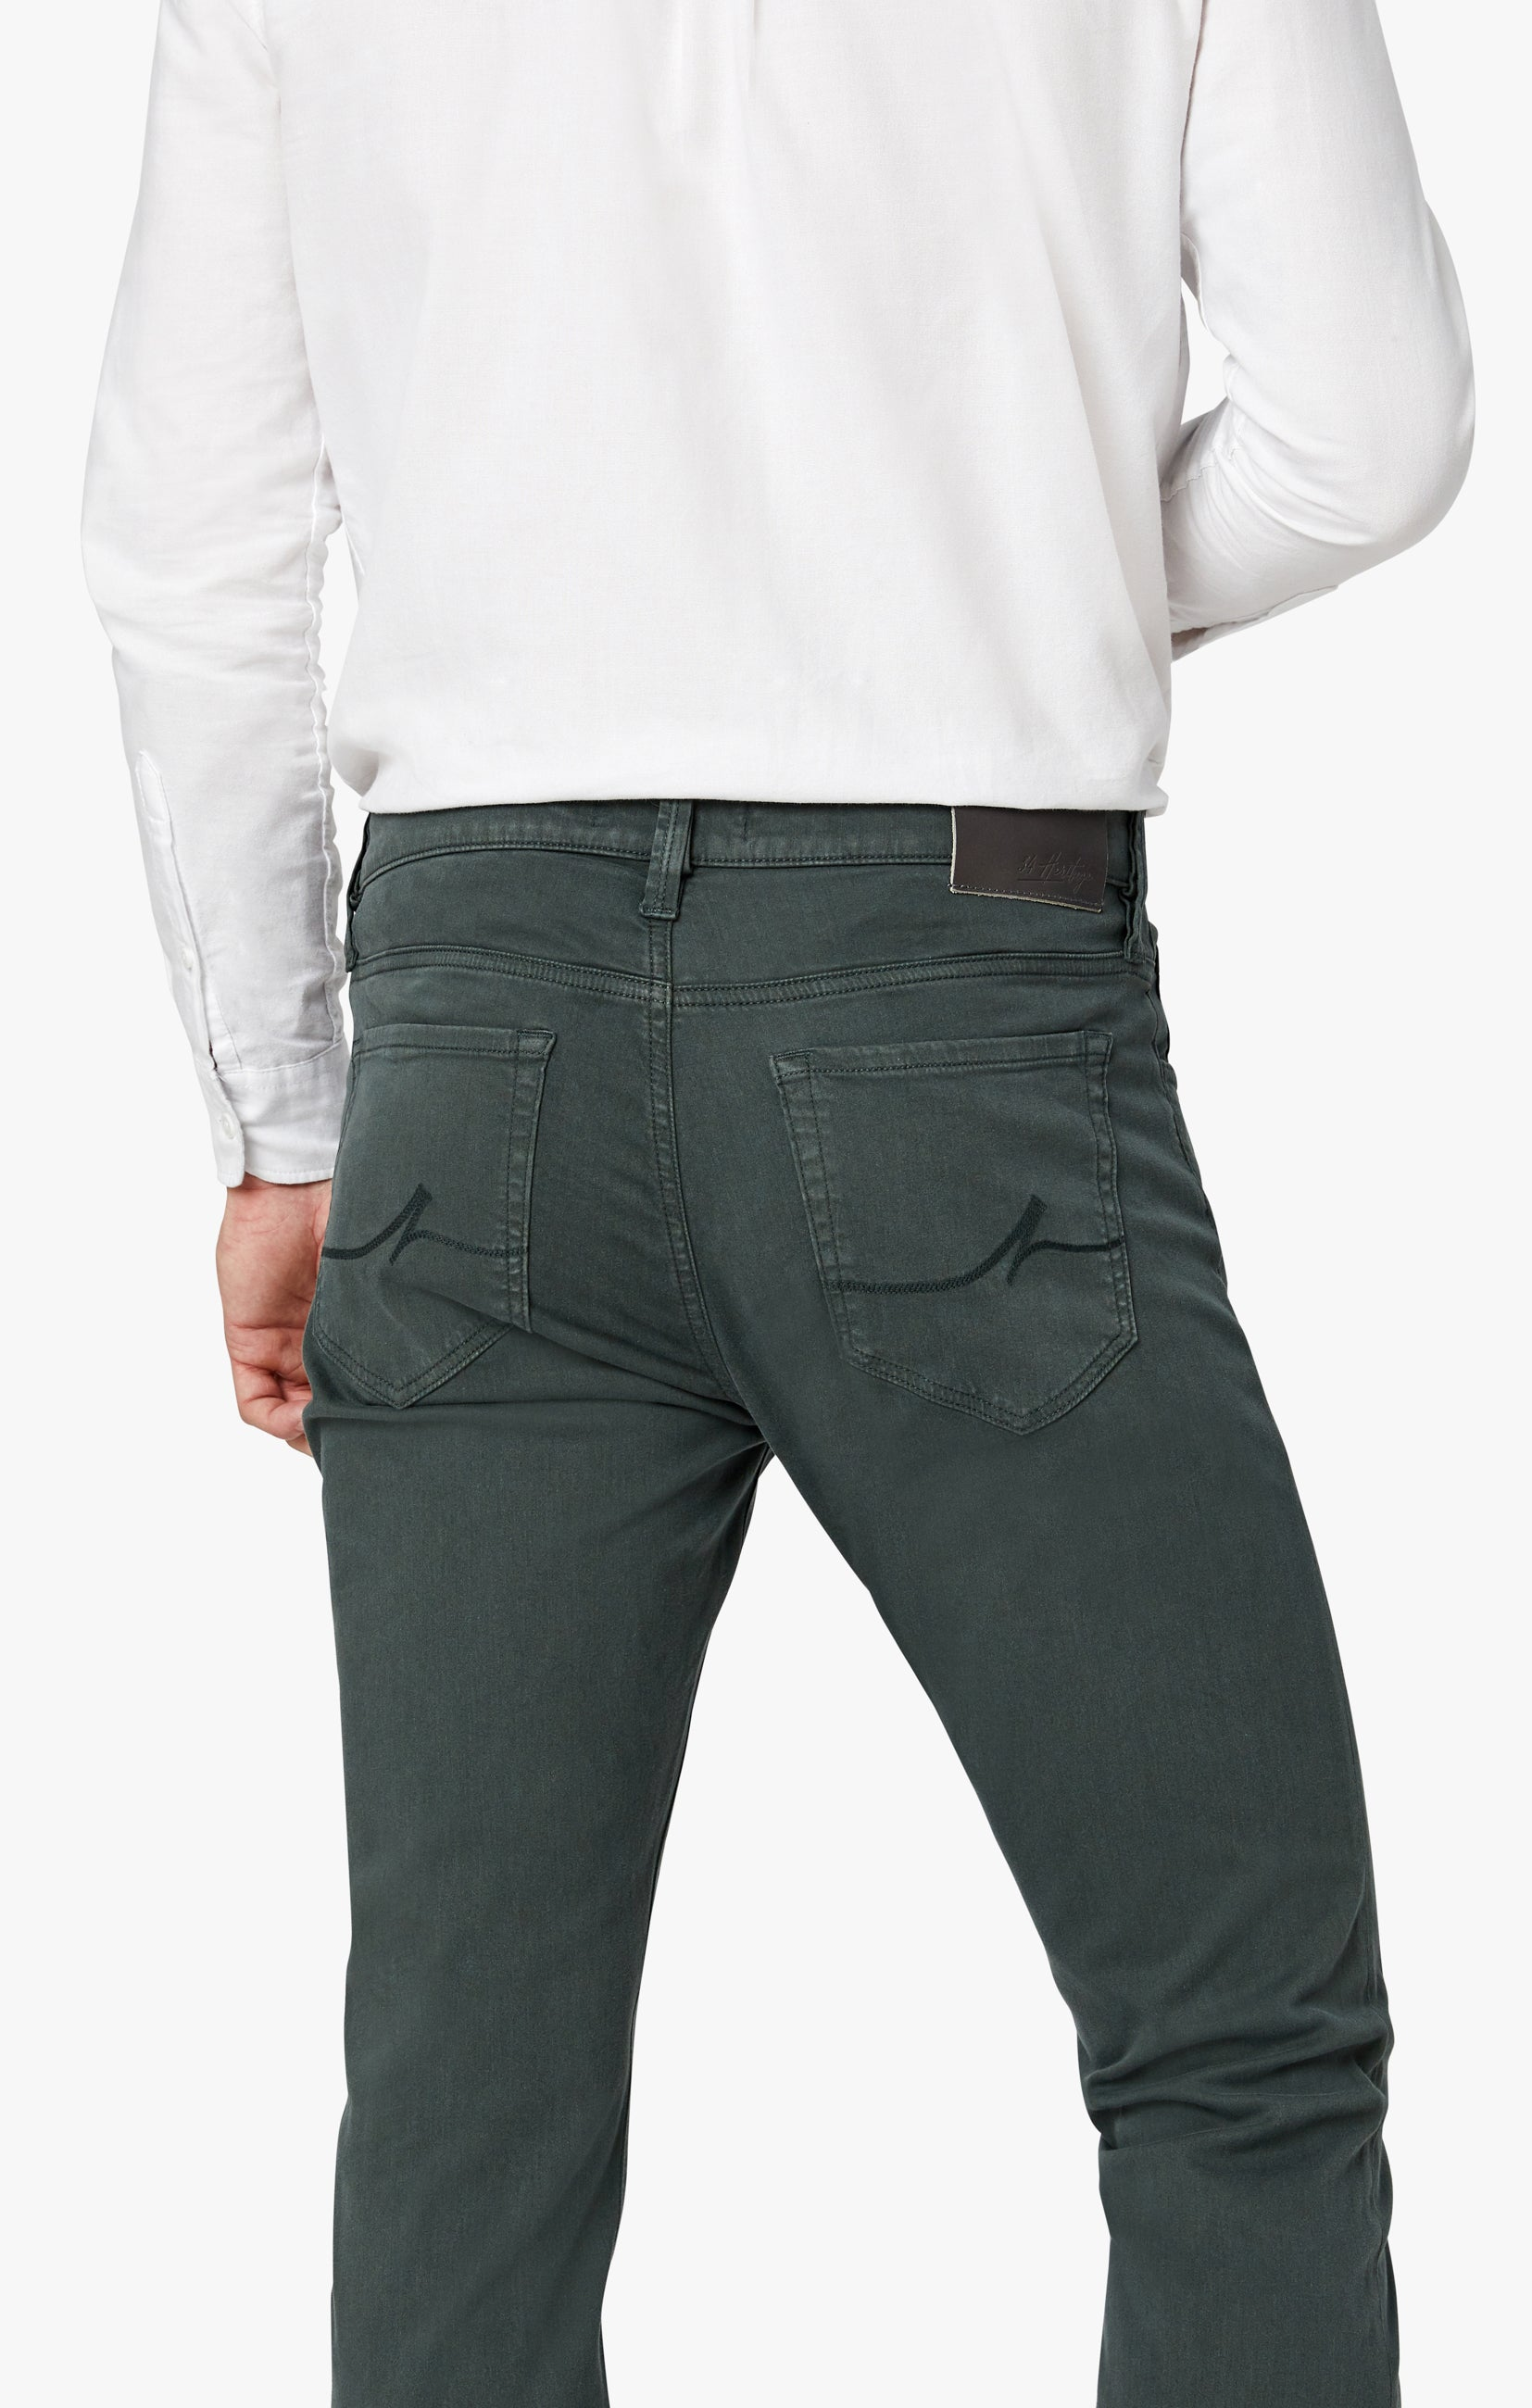 Charisma Relaxed Straight Pants in Urban Twill Image 4